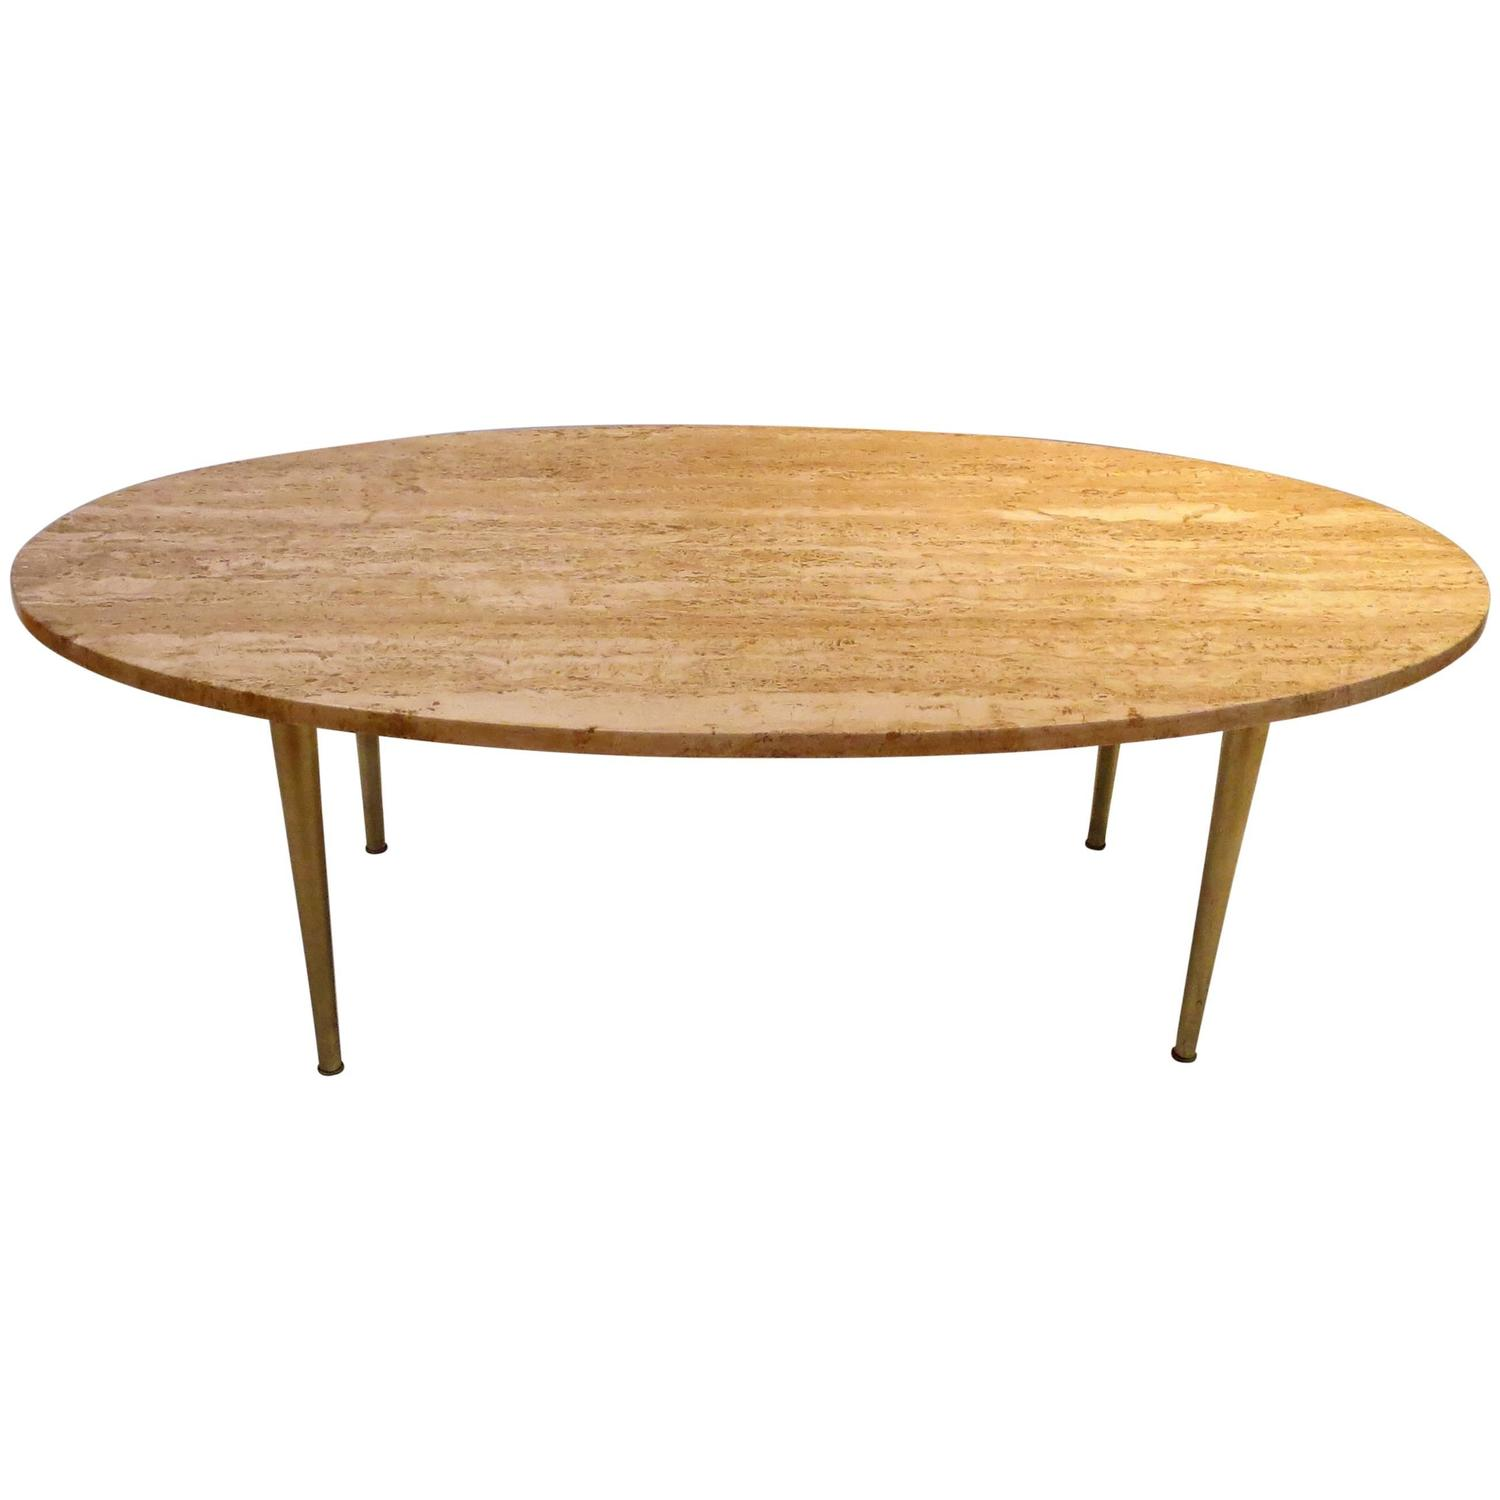 Mid Century Modern Marble Top Coffee Table: Mid-Century Modern Marble And Brass Tapered Legs Oval